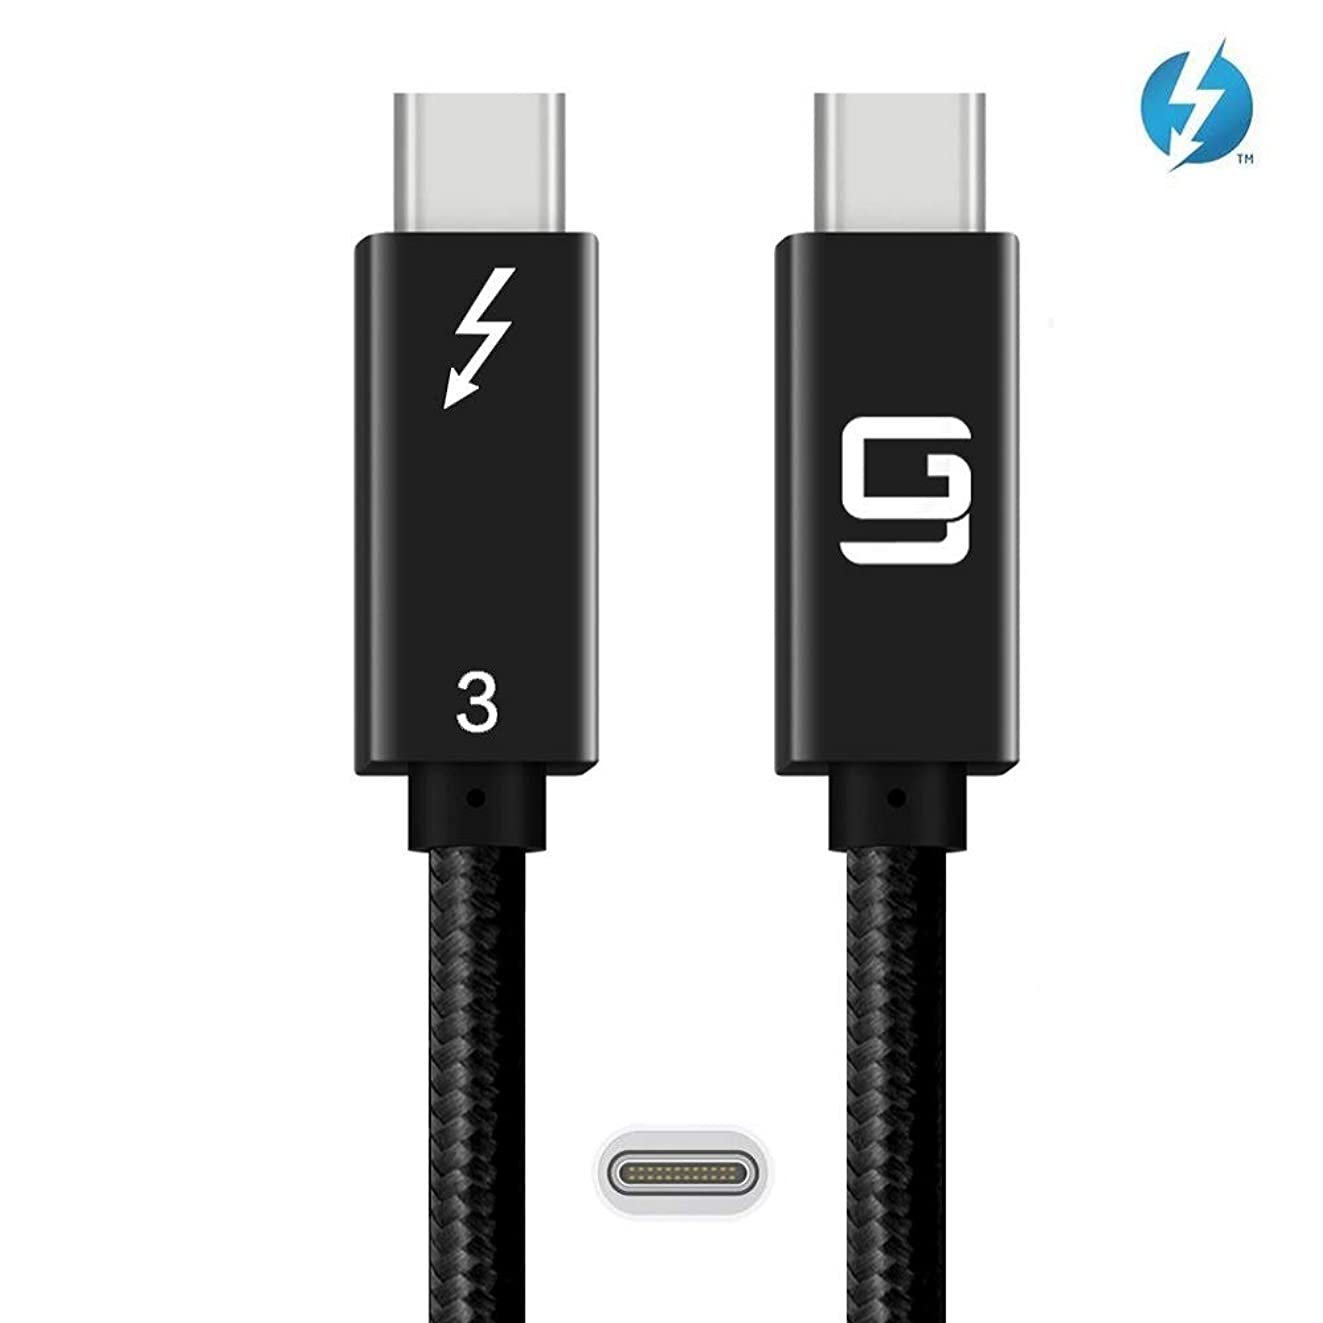 Thunderbolt 3 Cable [Certified] (40Gbps) 100W (USB-C Compatible) 6ft Nylon Braided, Type C 4k or 5k @60hz (6.6ft/20Gbps)